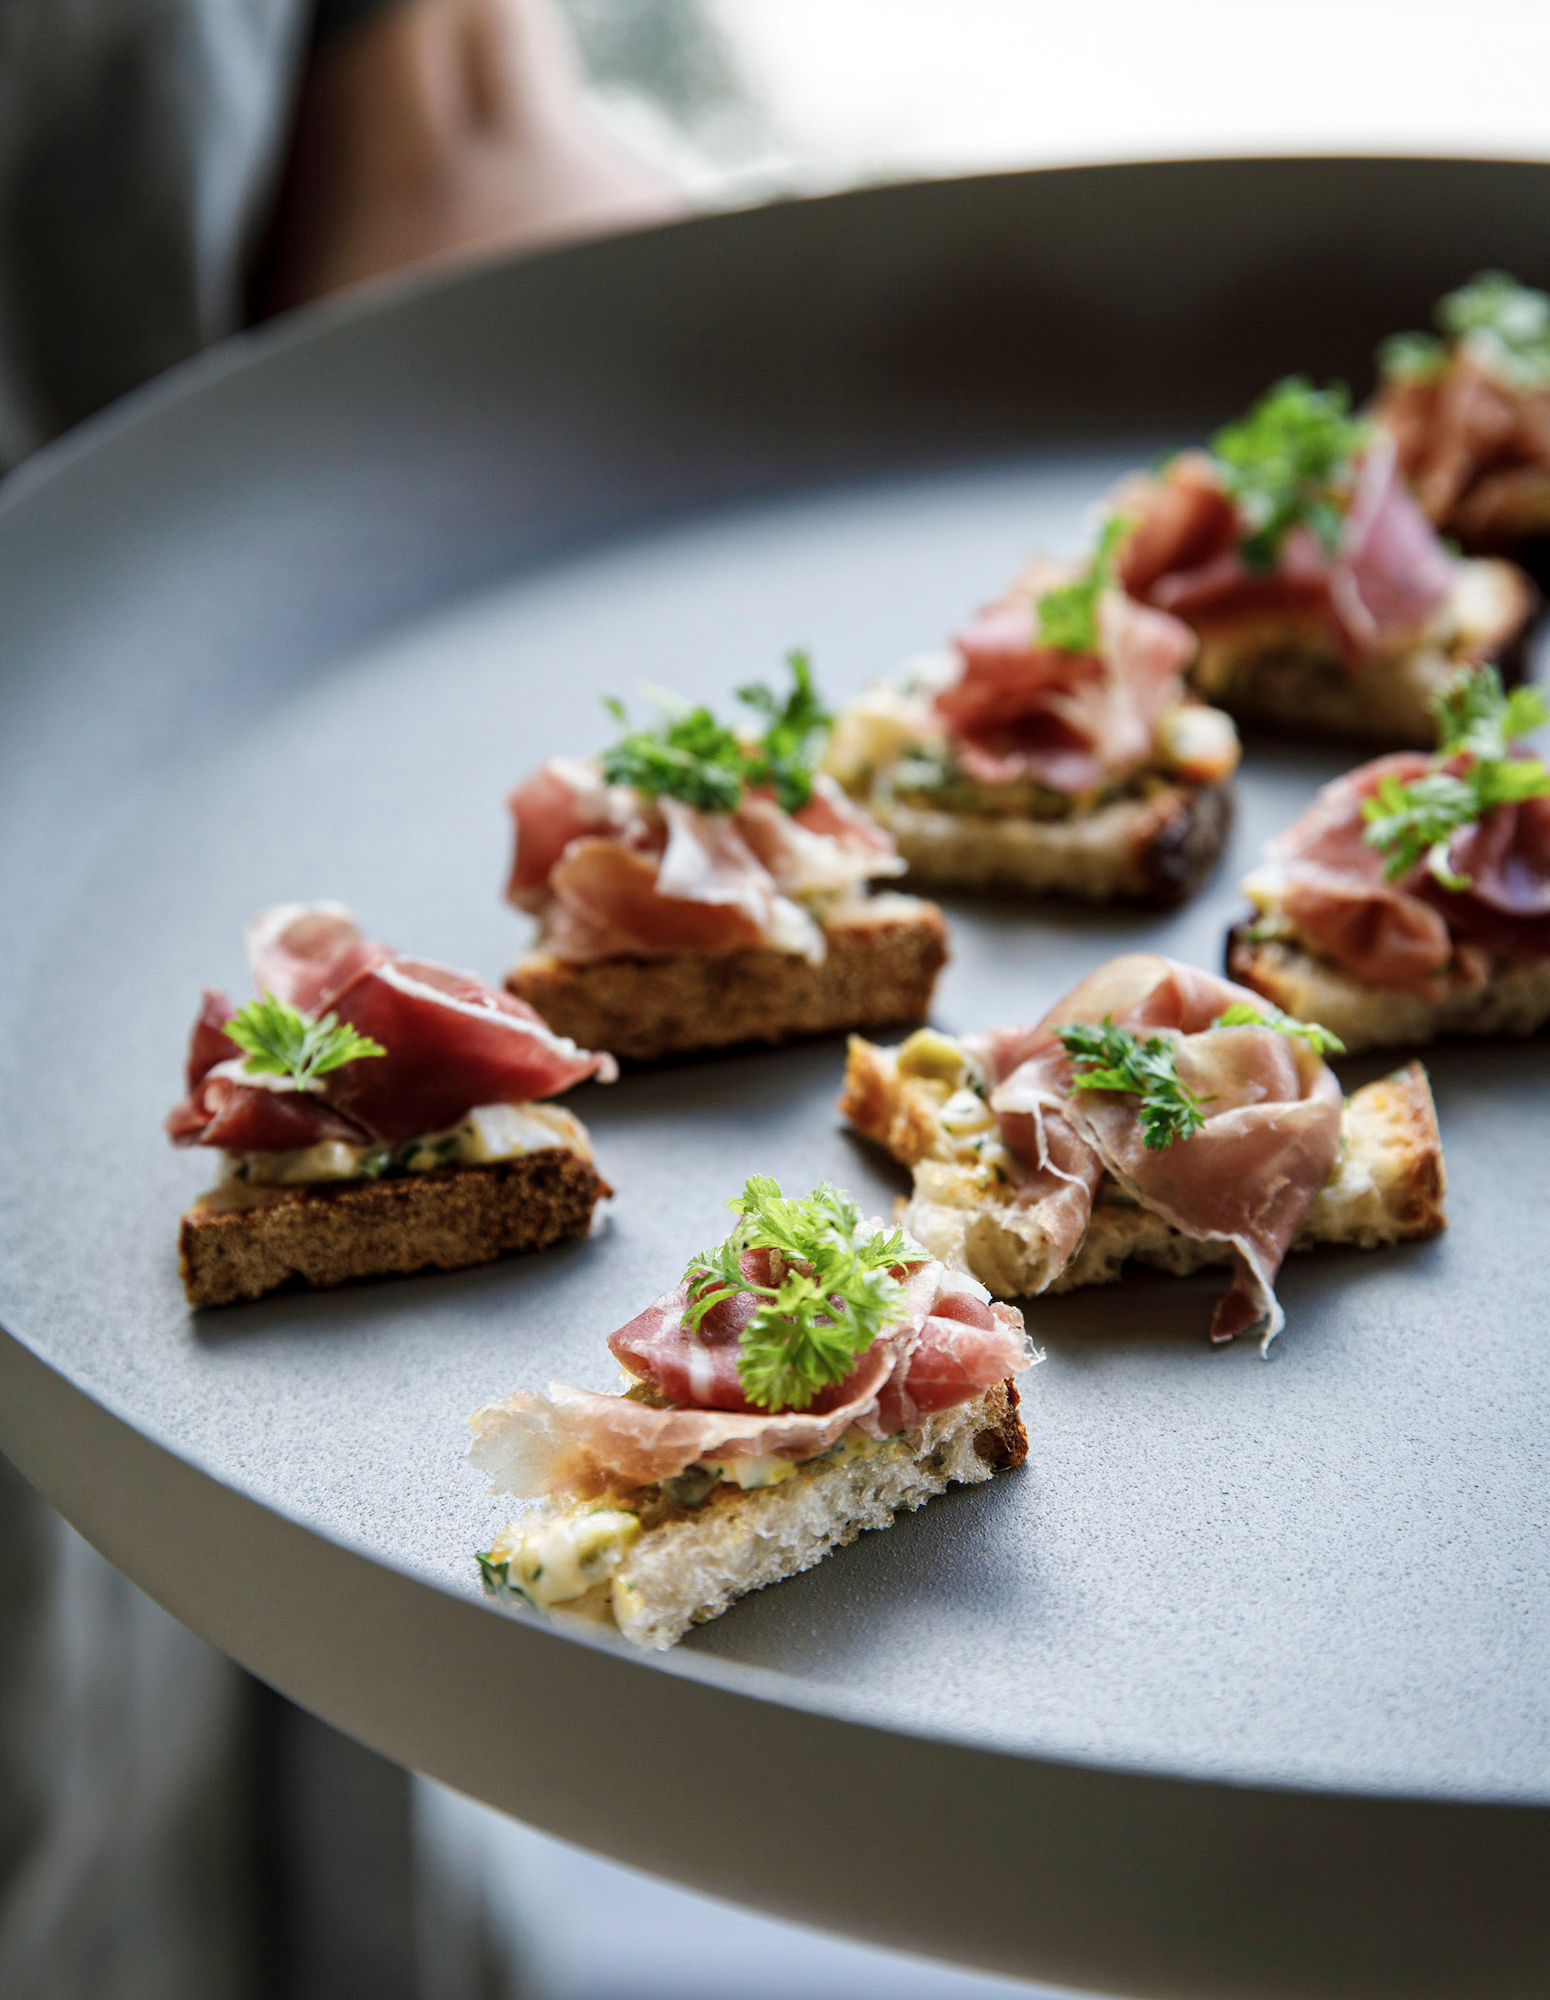 Chef Neil Perry's prosciutto and gribiche on toast for the Lexus Culinary Perspectives cookbook